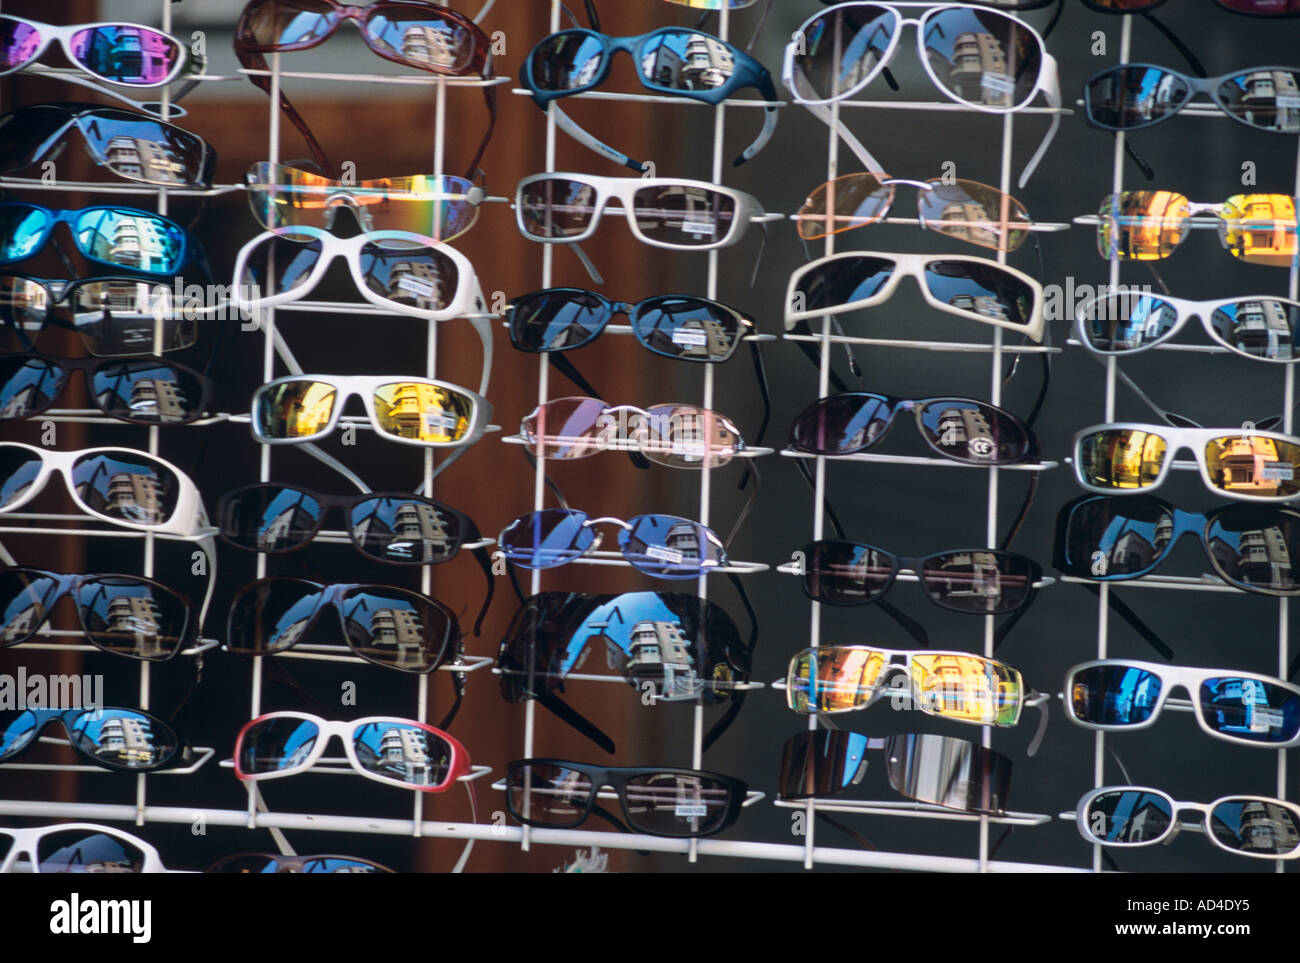 Sunglasses on sale in a Spanish town with lady viewing from behind a rack - Stock Image